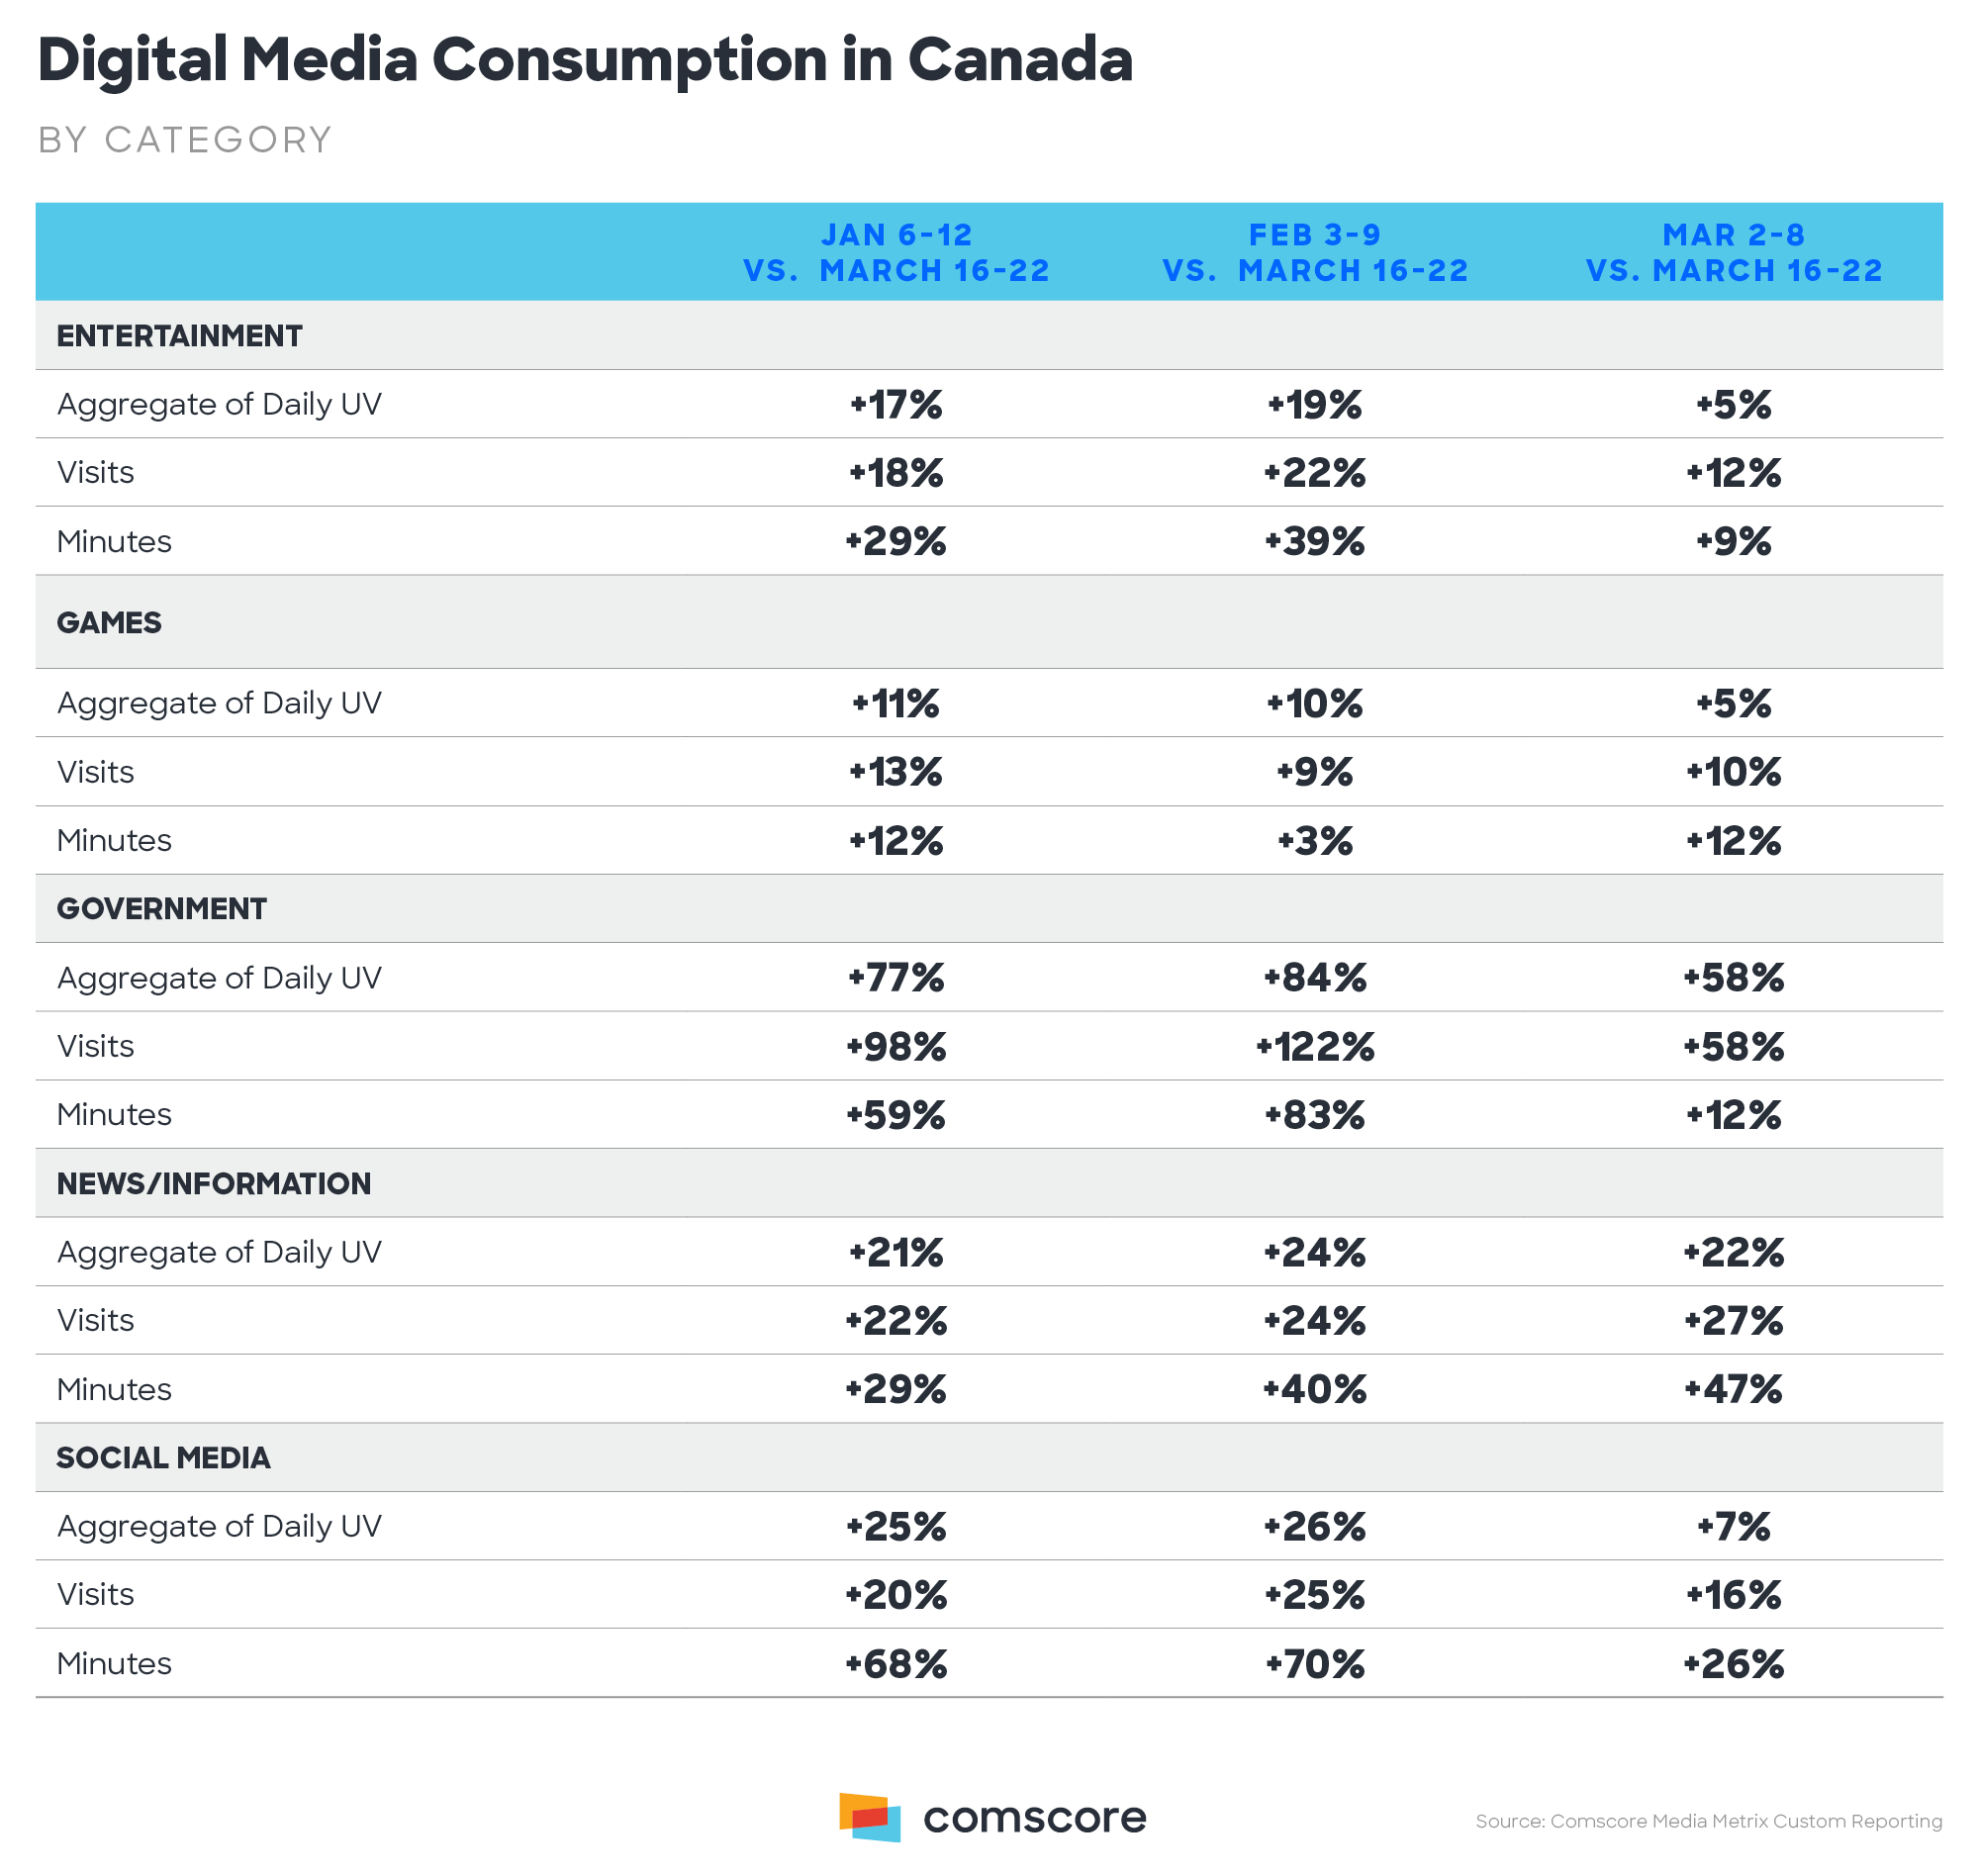 Digital Media Consumption in Canada – by Category